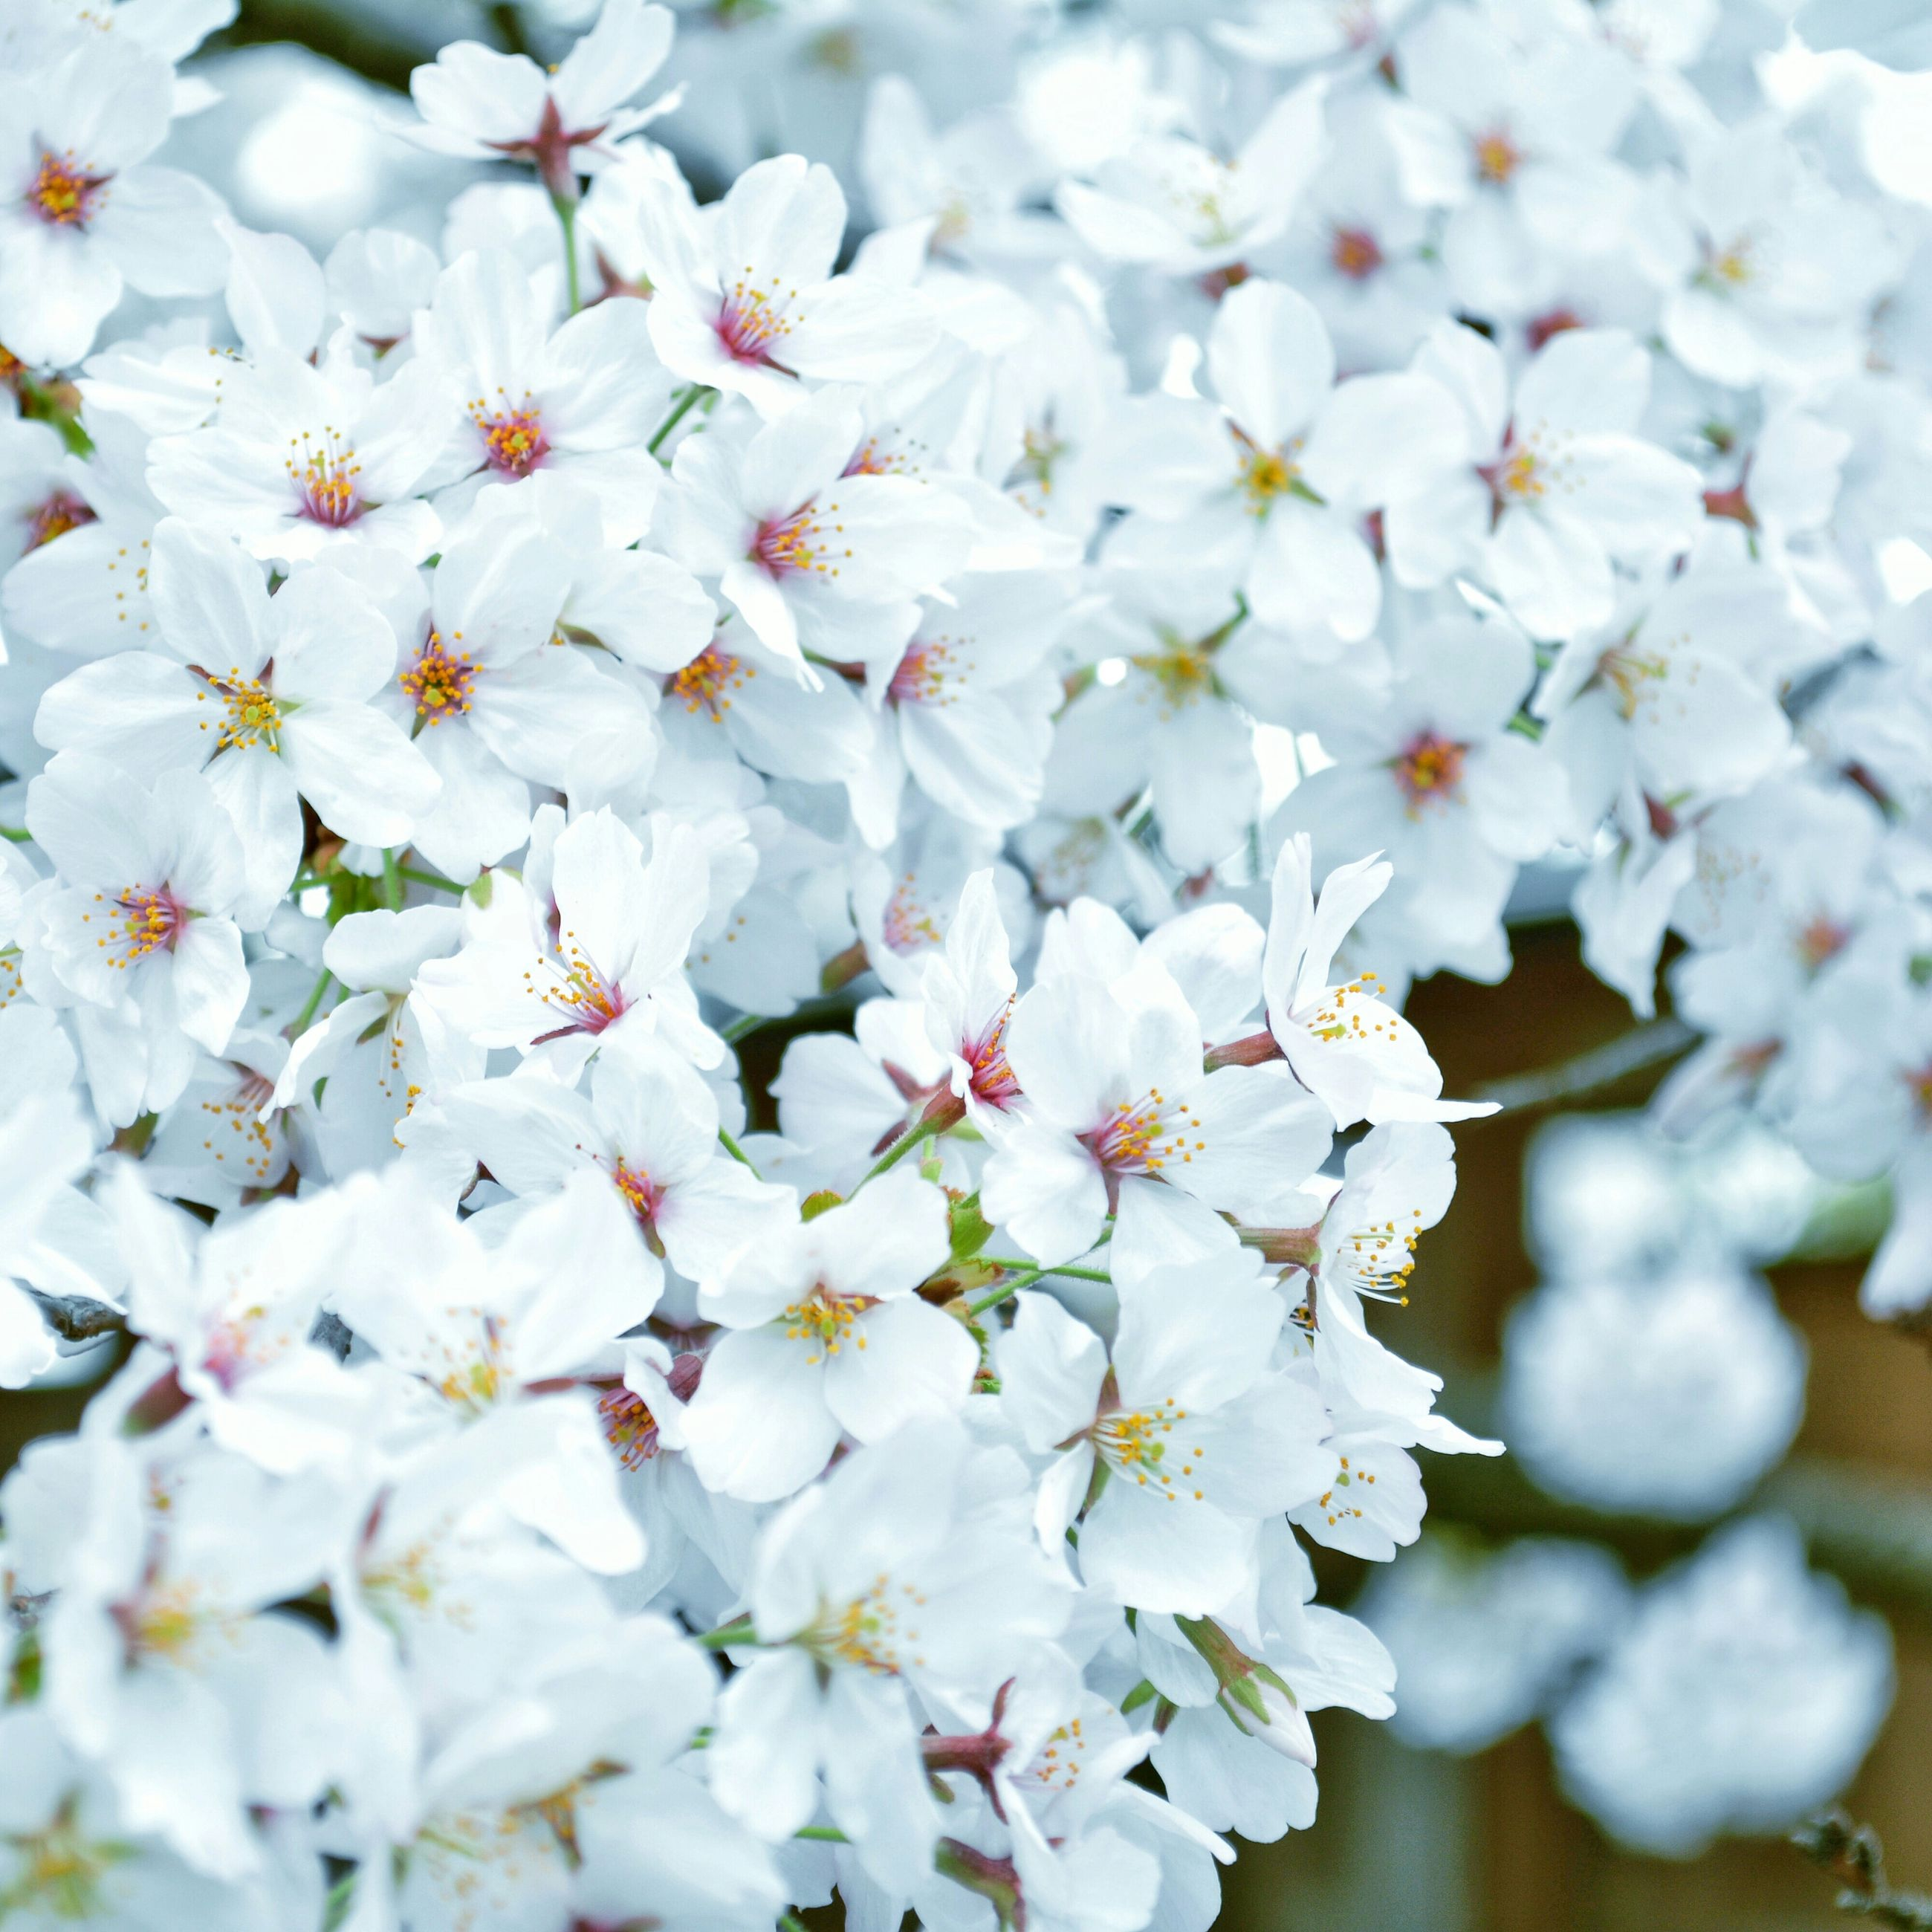 flower, freshness, fragility, white color, petal, growth, beauty in nature, flower head, blossom, nature, blooming, cherry blossom, focus on foreground, close-up, in bloom, selective focus, springtime, cherry tree, botany, branch